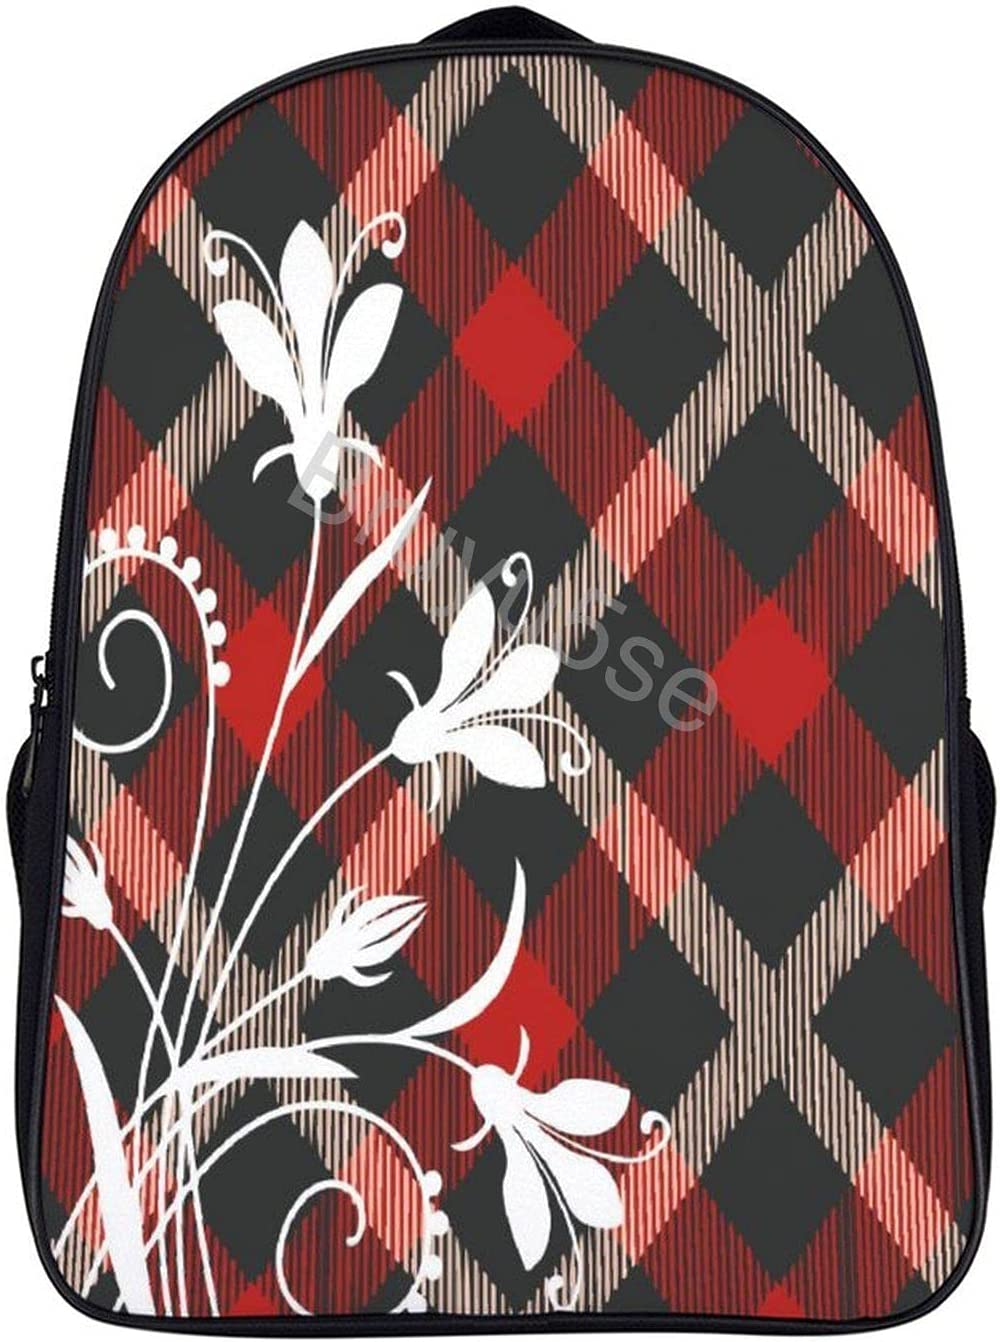 16in Travel Laptop Backpacks Abstract 35% OFF Free shipping New White Flowers Durab Plaid